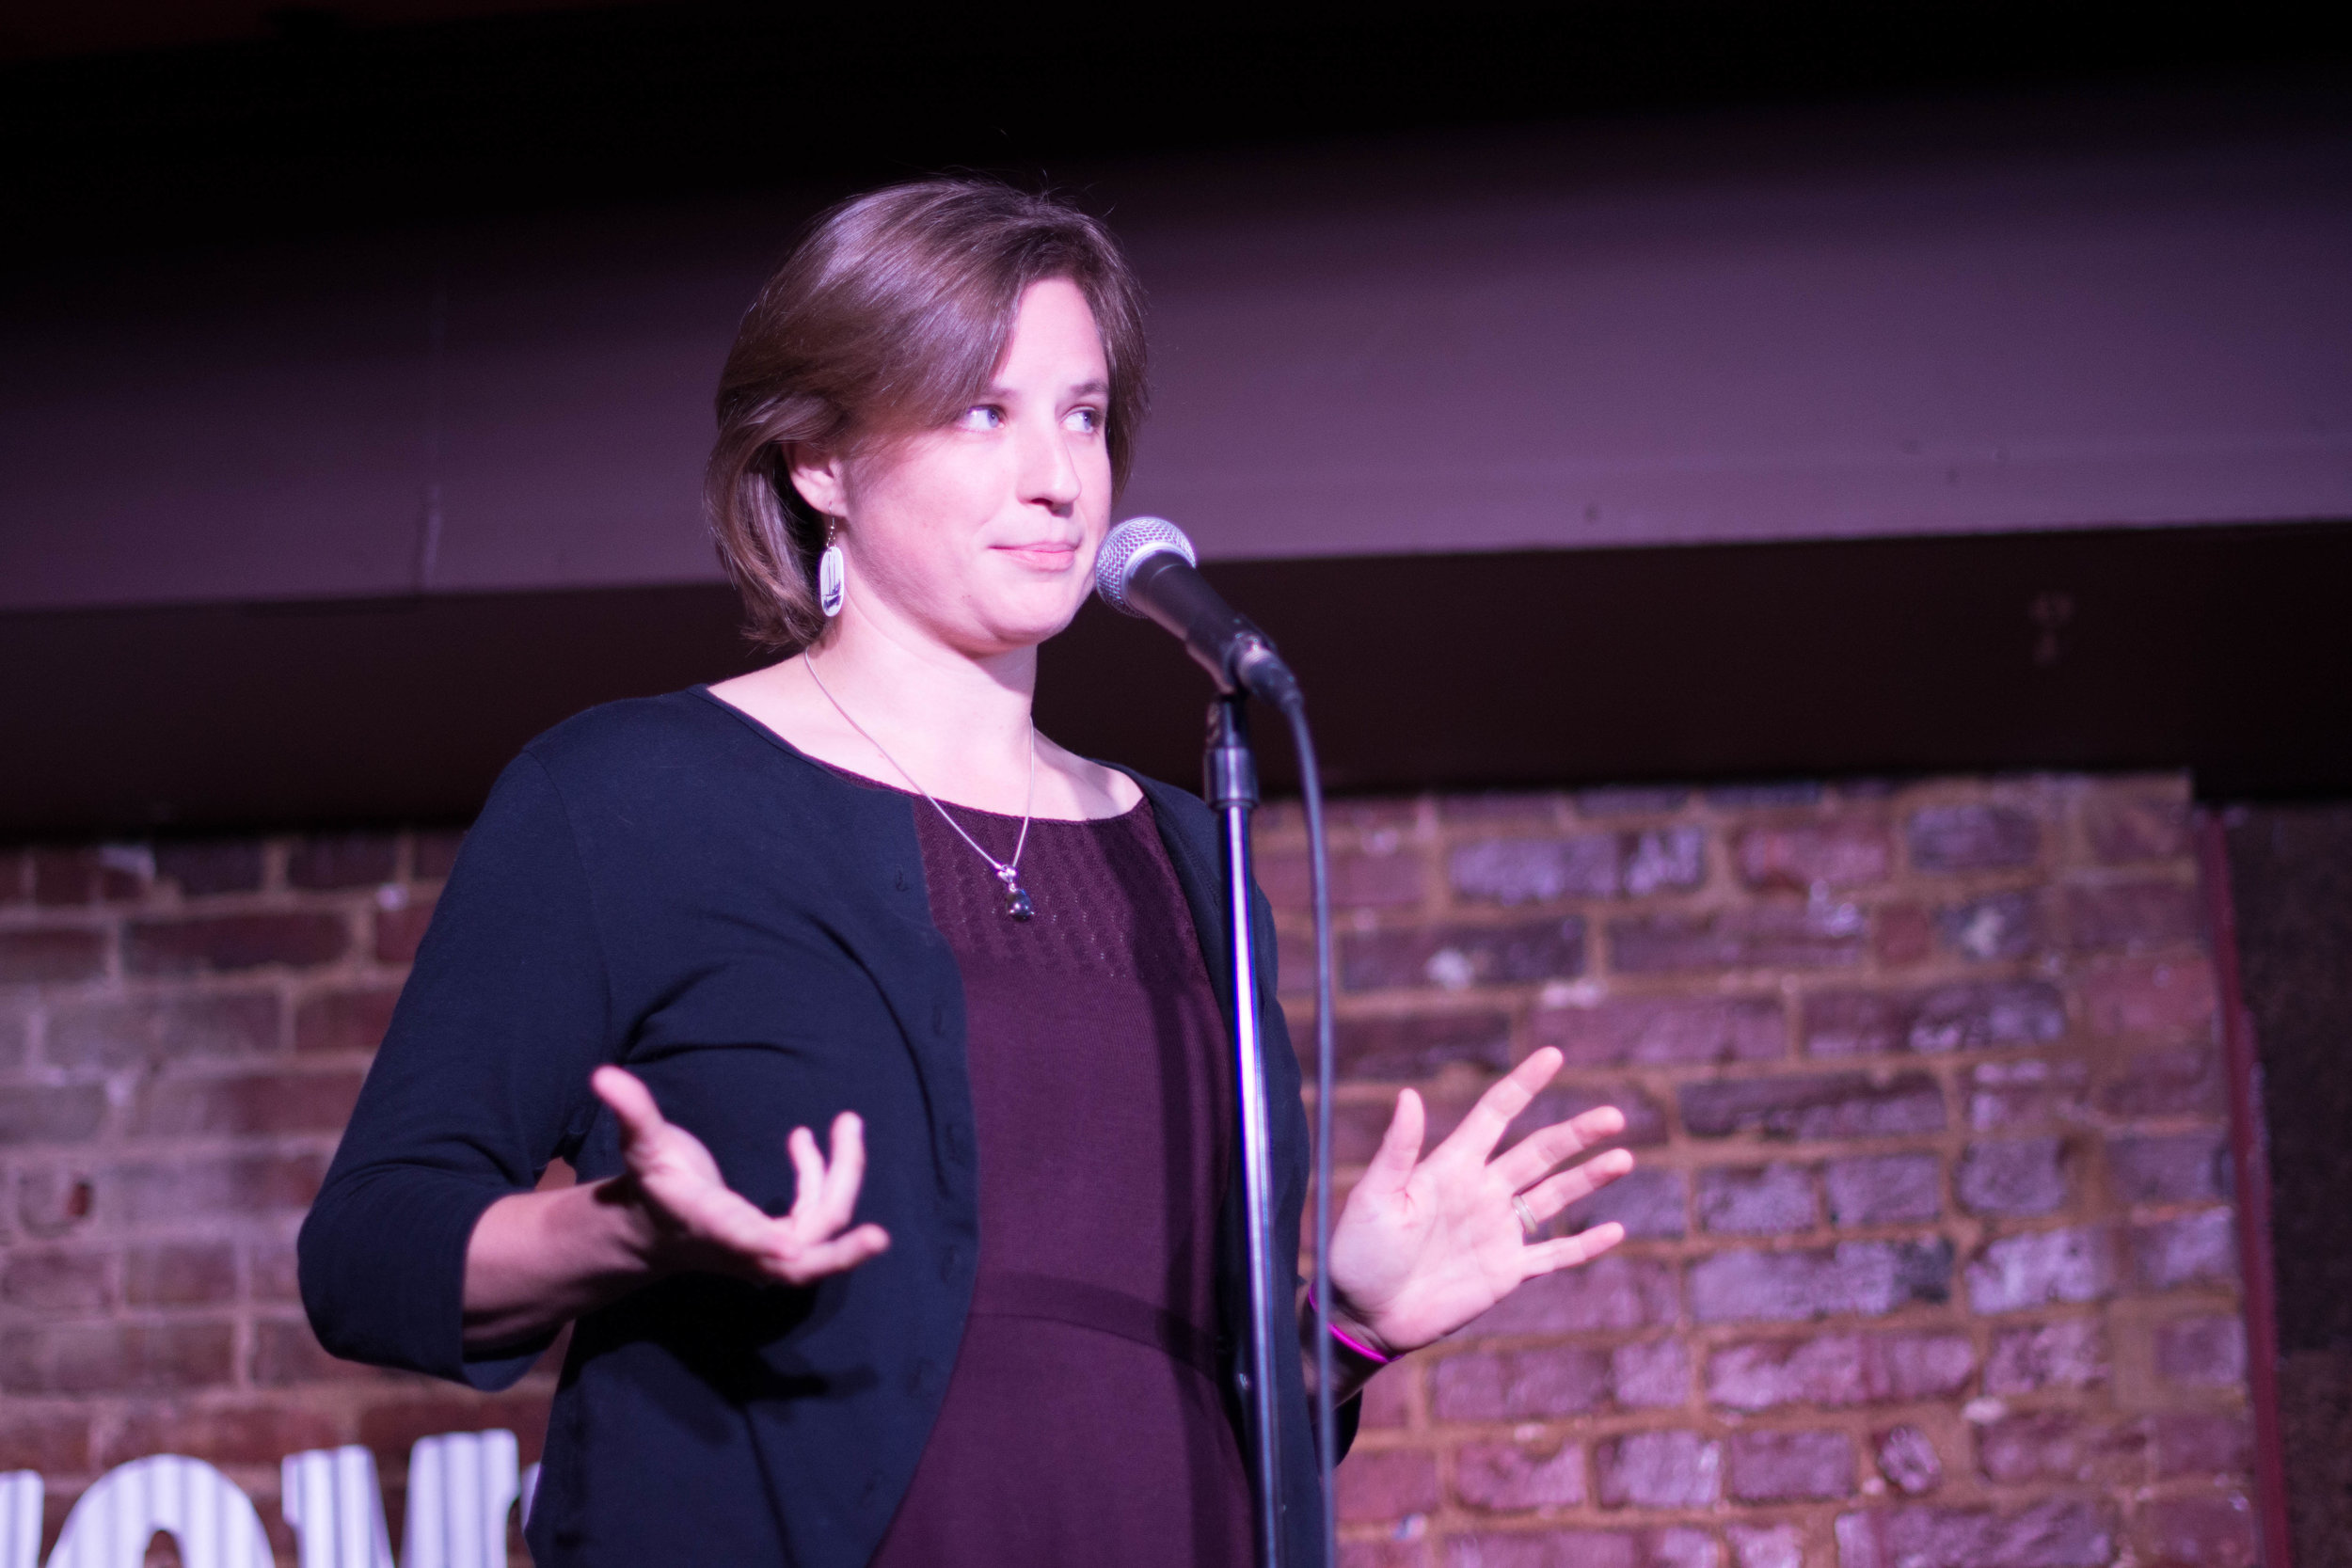 Skylar Bayer shares her story with Story Collider at the Beir Baron Tavern in Washington DC in October 2018. Photo by Lauren Lipuma.